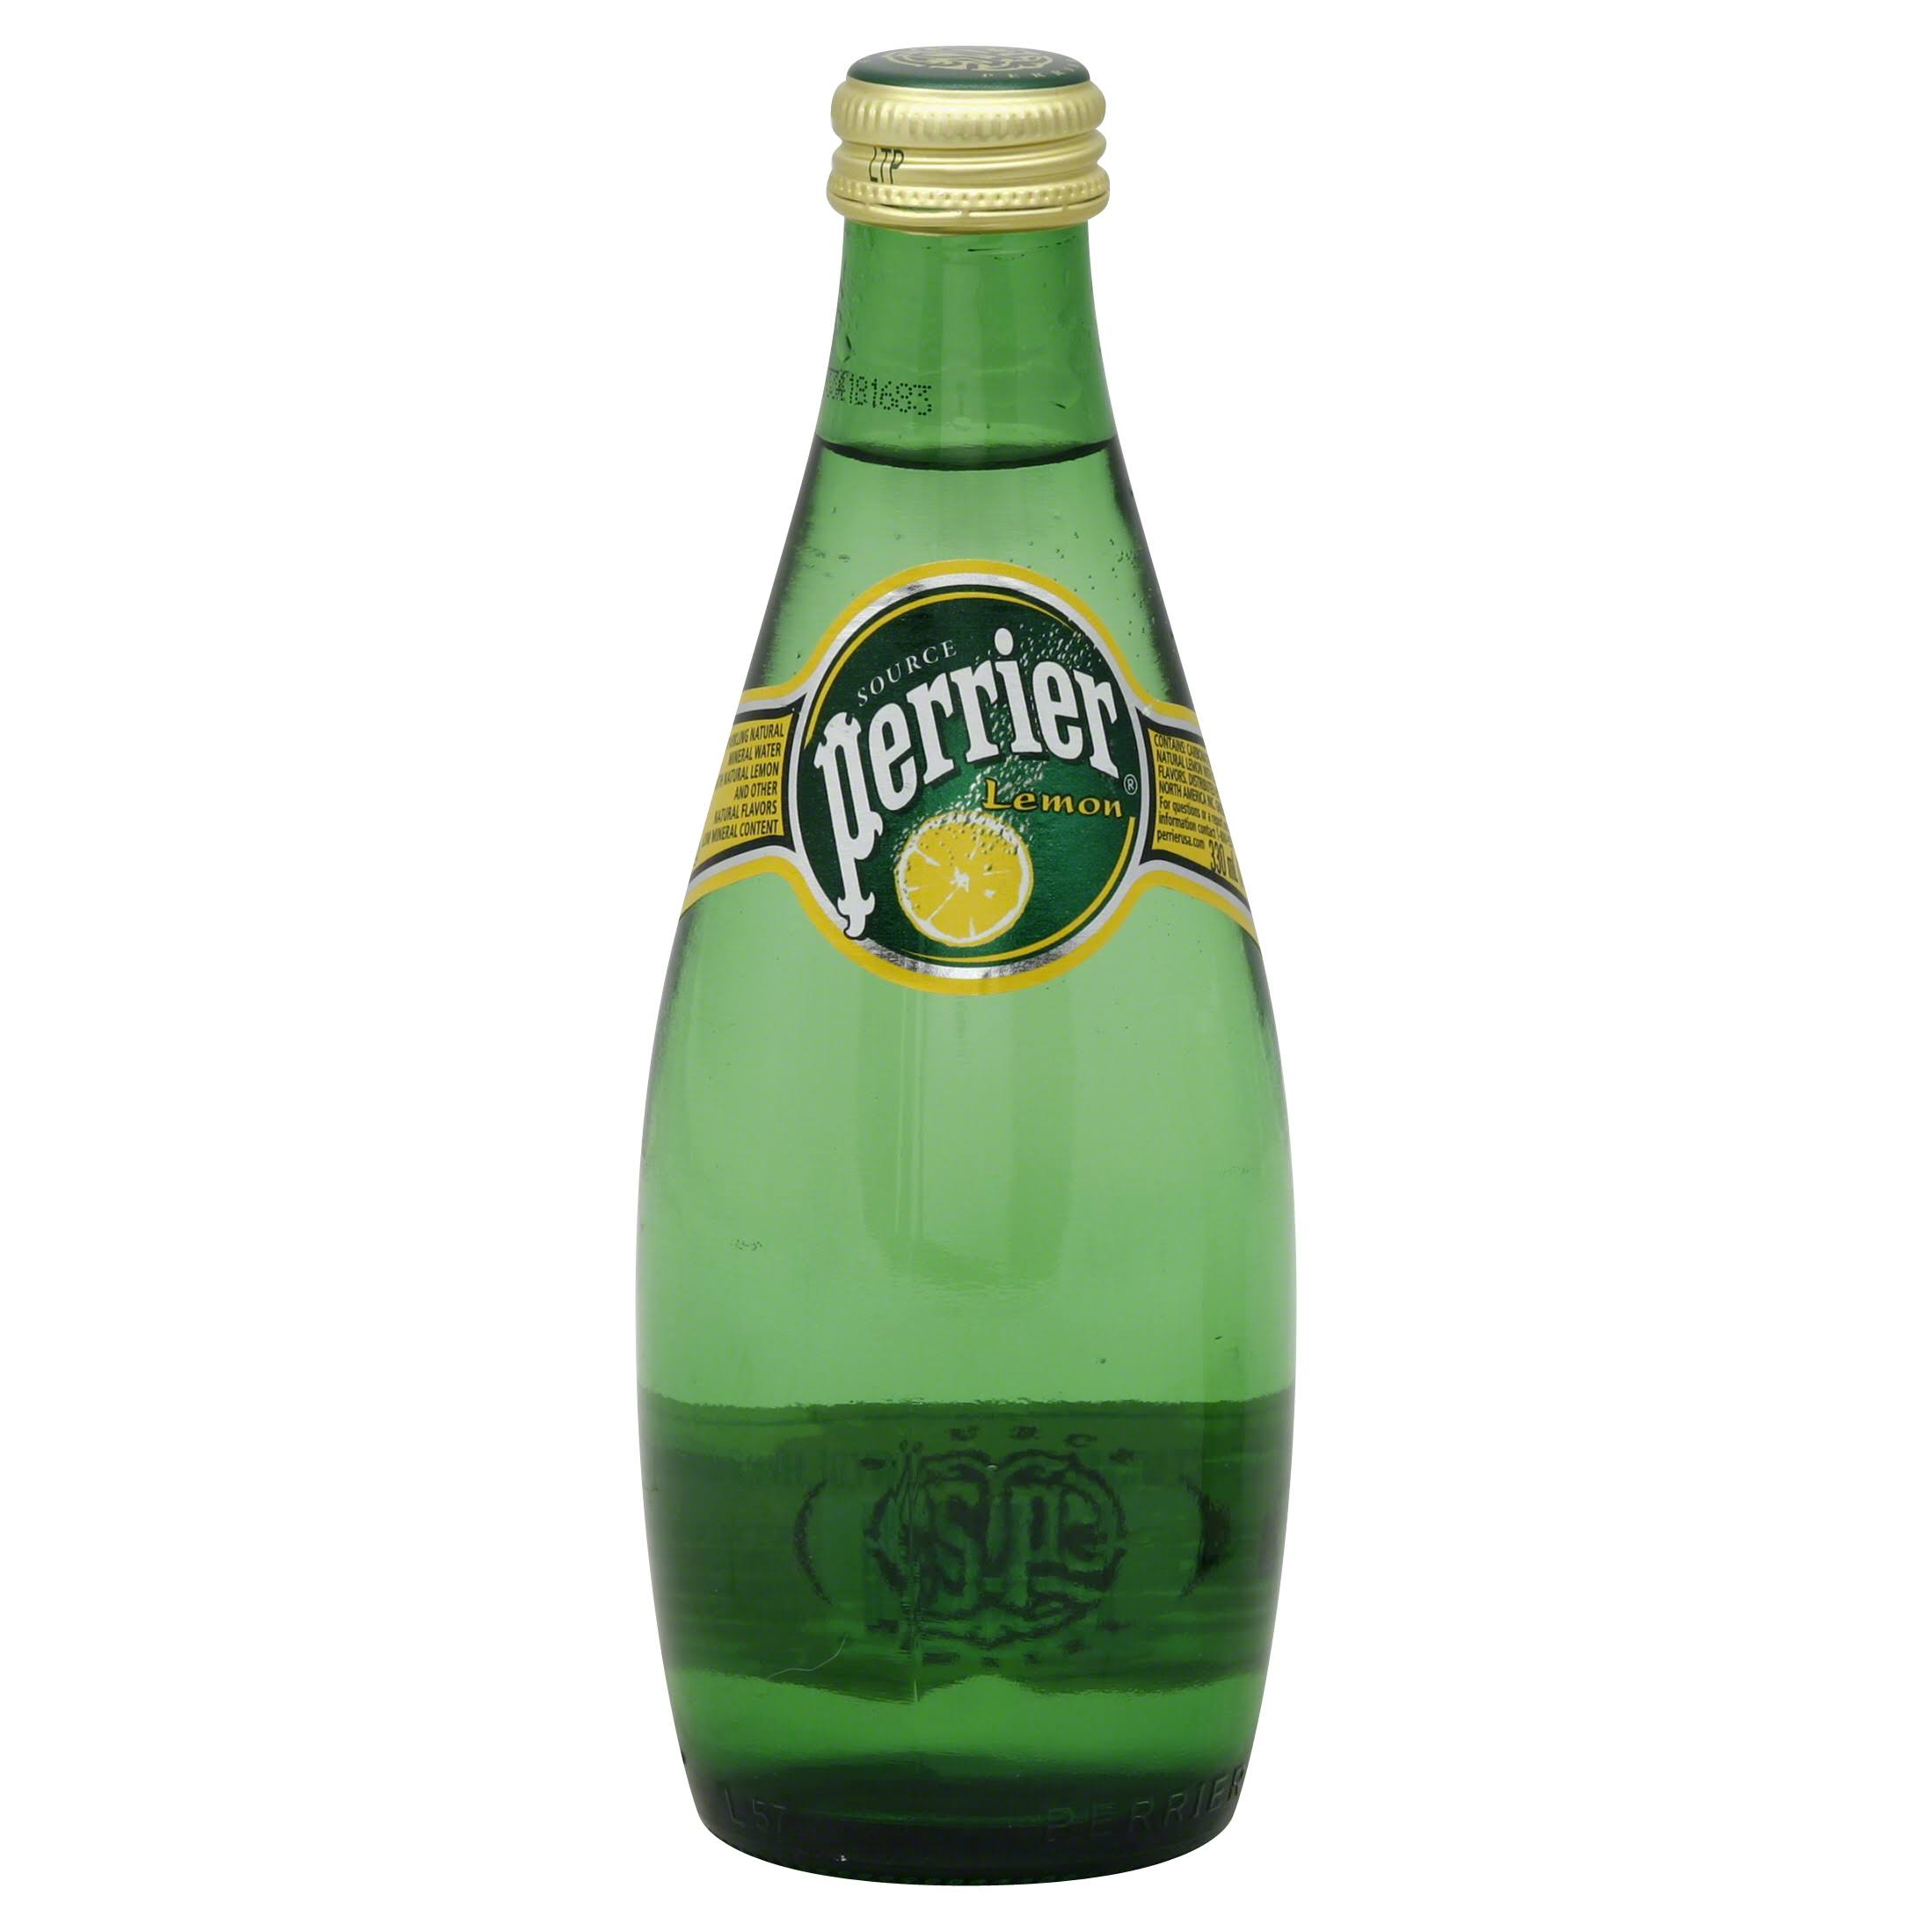 Perrier Sparkling Natural Mineral Water, Lemon - 11.15 fl oz